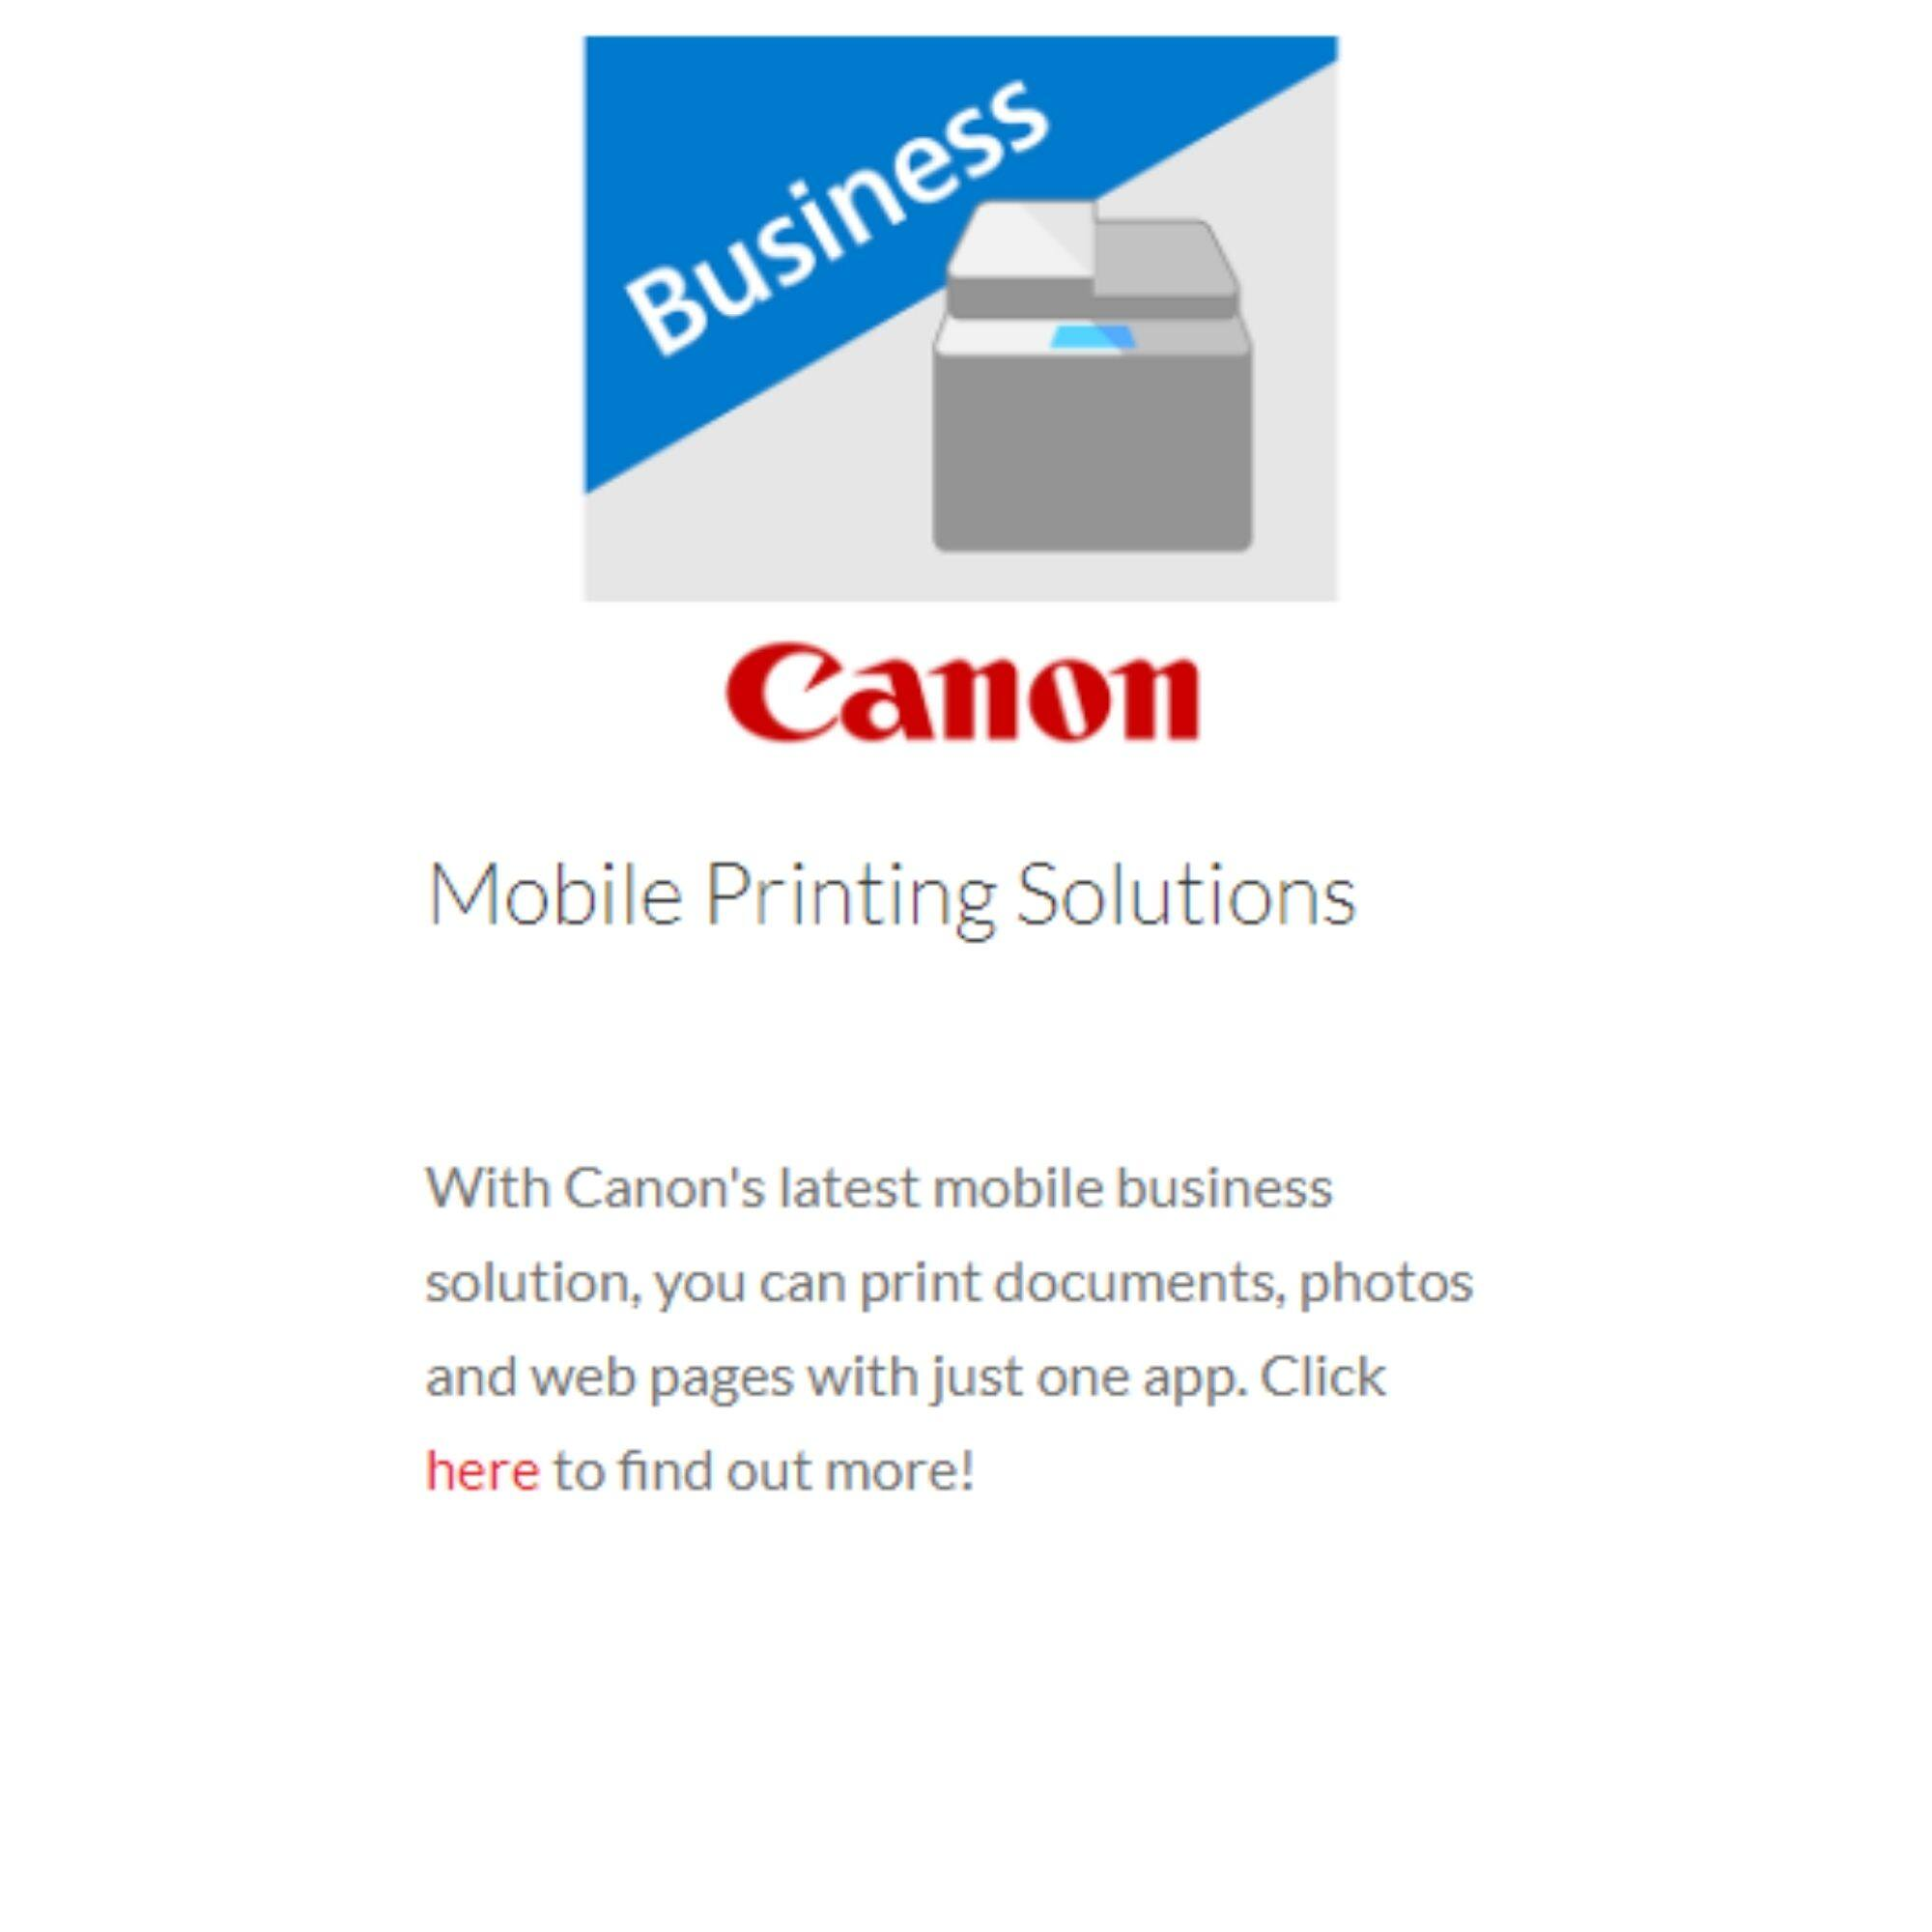 Canon imageCLASS LBP-664Cx Brilliance in Colour, High in Efficiency - WiFi wireless connection/Auto Duplex Print/Support AirPrint